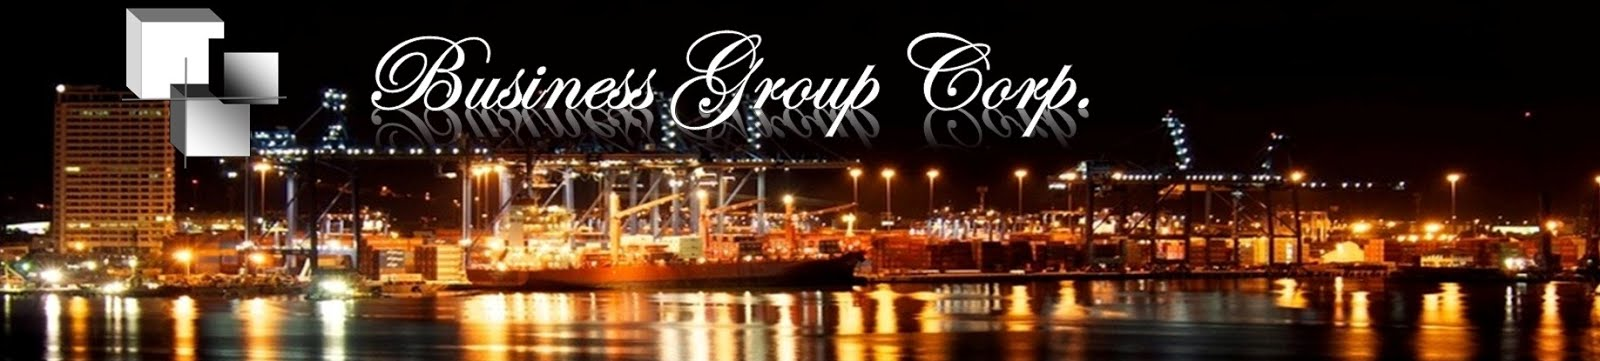 Business Group Corp